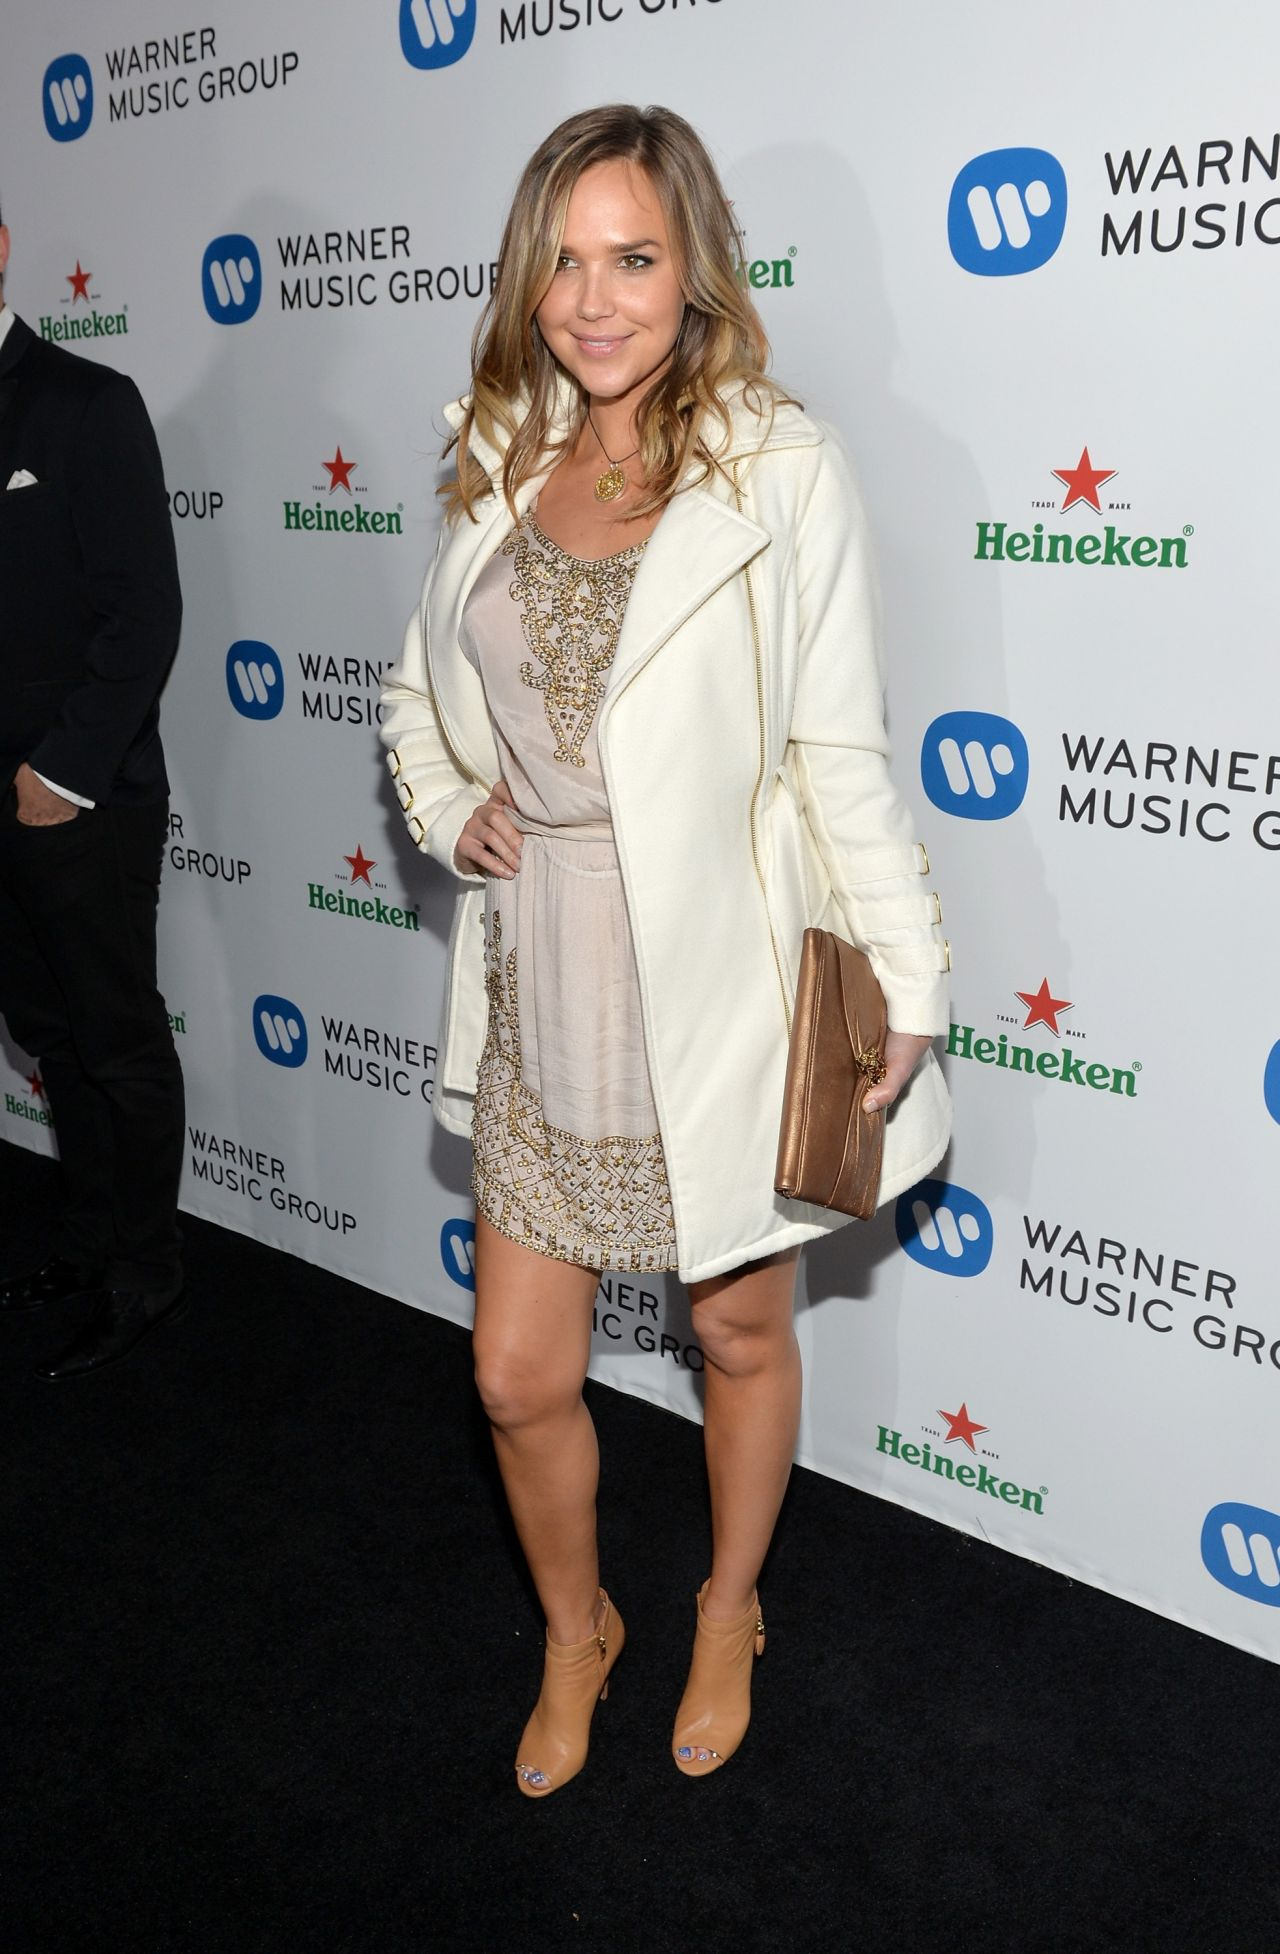 Arielle Kebbel - Warner Music Group Annual GRAMMY Celebration, Los Angeles January 2014